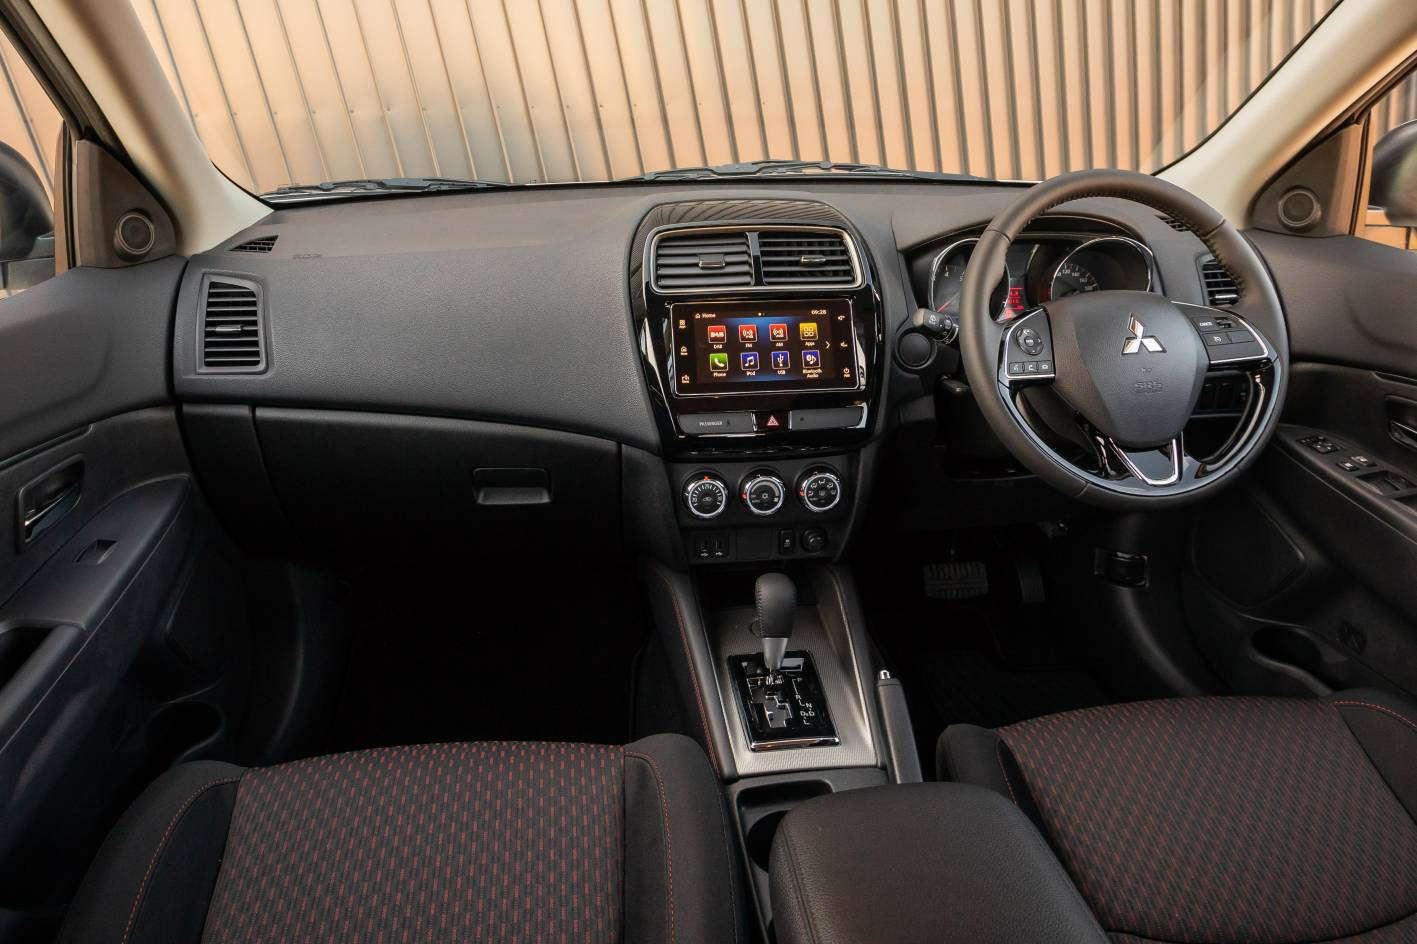 2019 Mitsubishi ASX pricing and specification - ForceGT.com